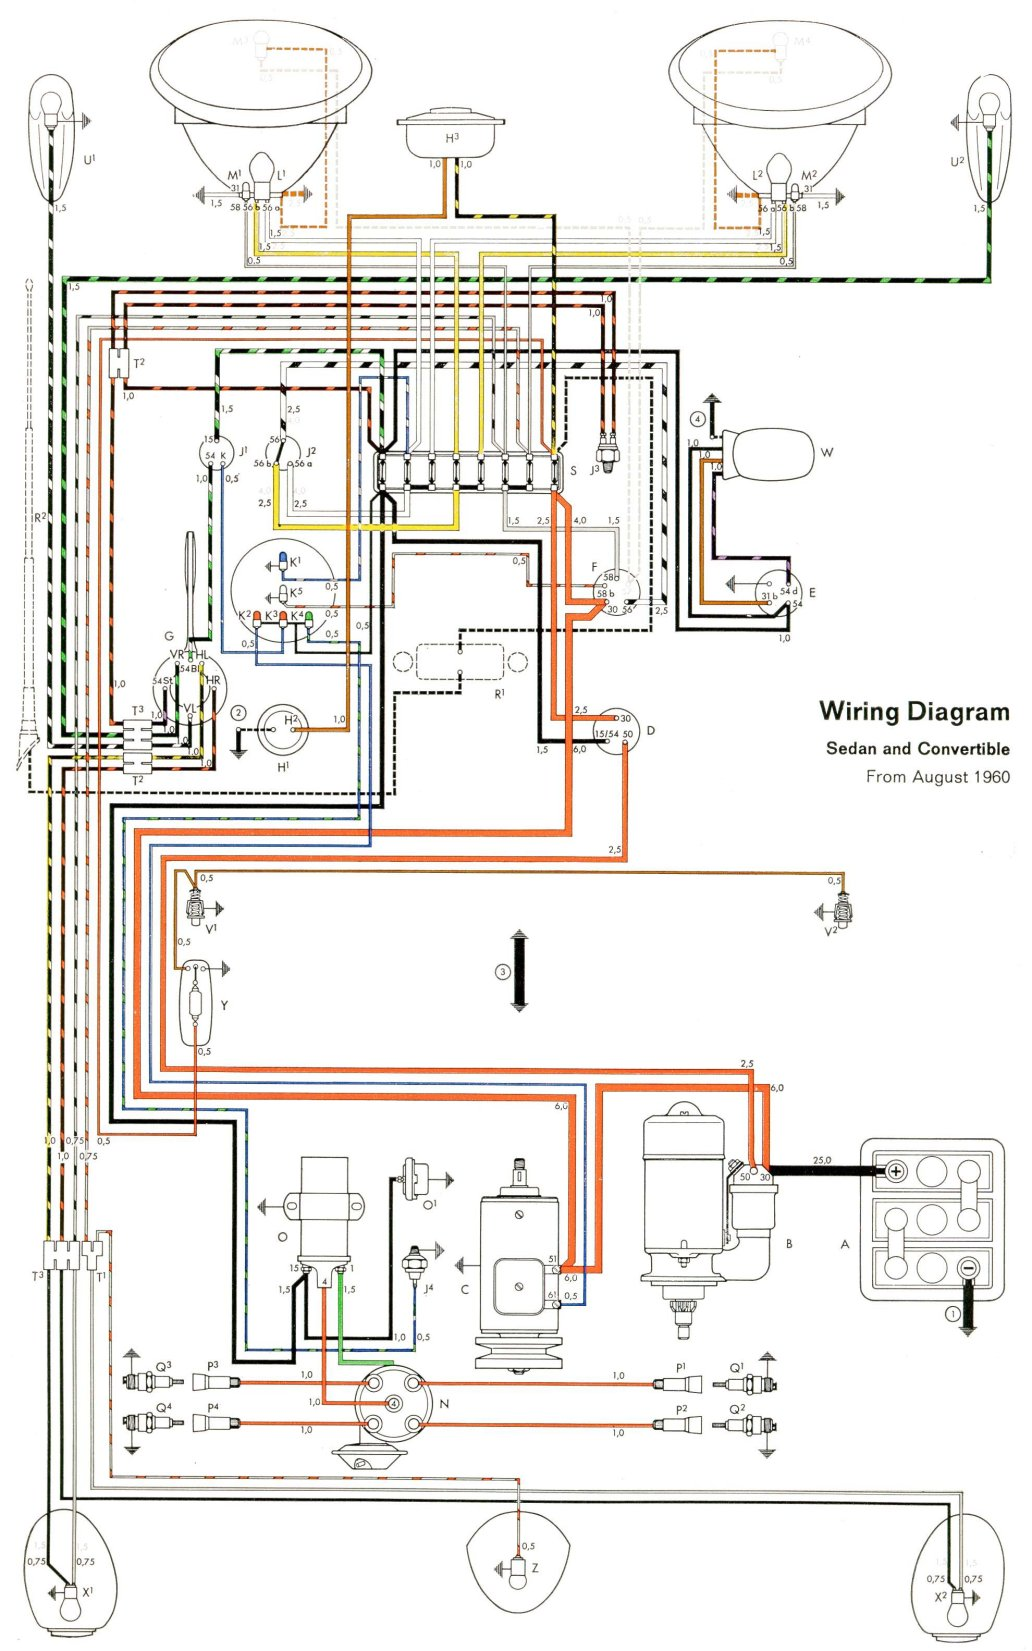 Volkswagen Beetle Fuse Diagram Wiring Data 2000 Vw New Thesamba Com Type 1 Diagrams Starter